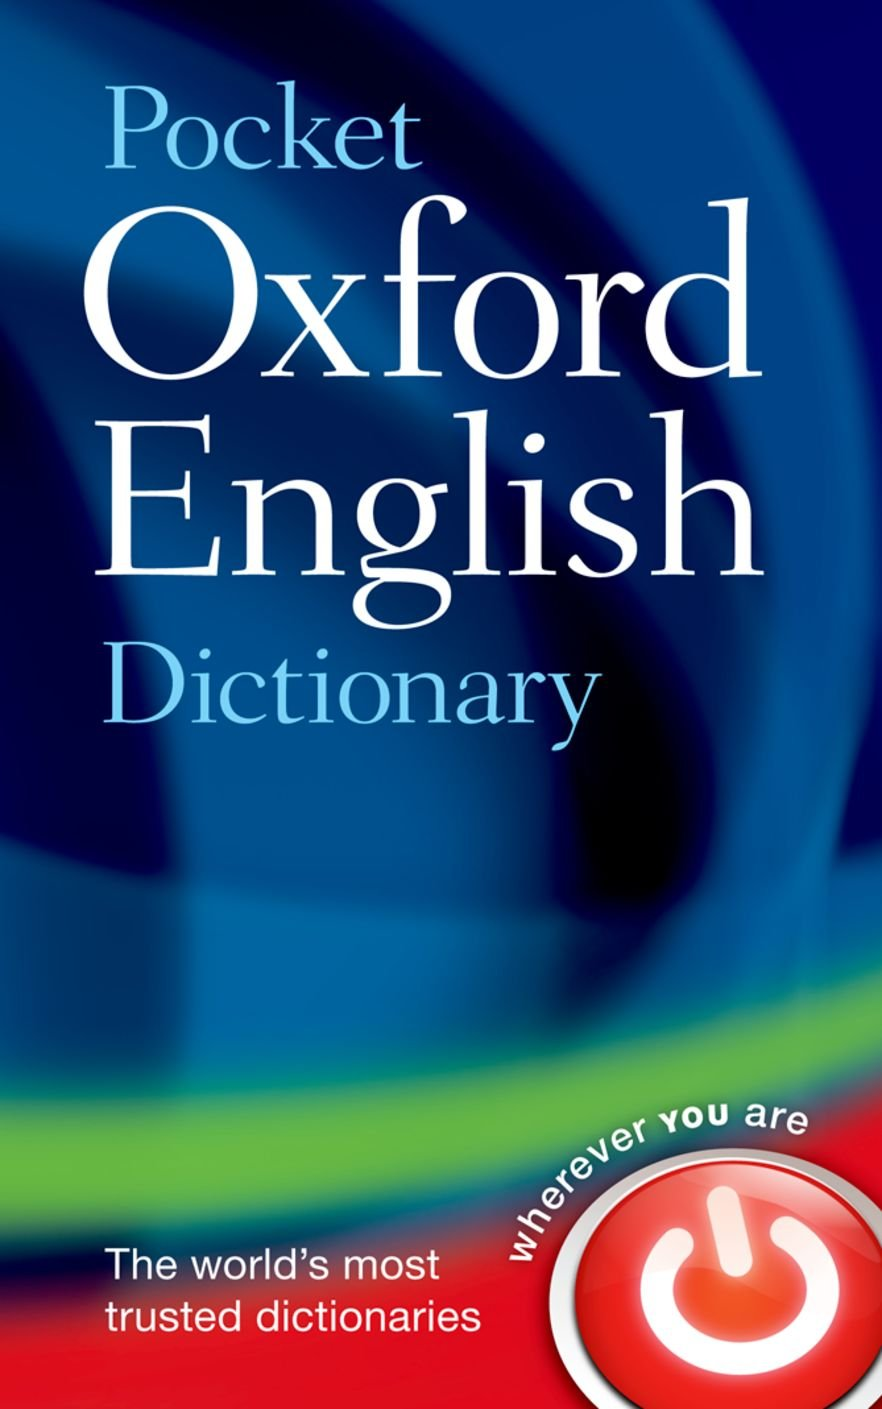 Pocket Oxford English Dictionary: Amazon.co.uk: Oxford Dictionaries:  8601404204746: Books